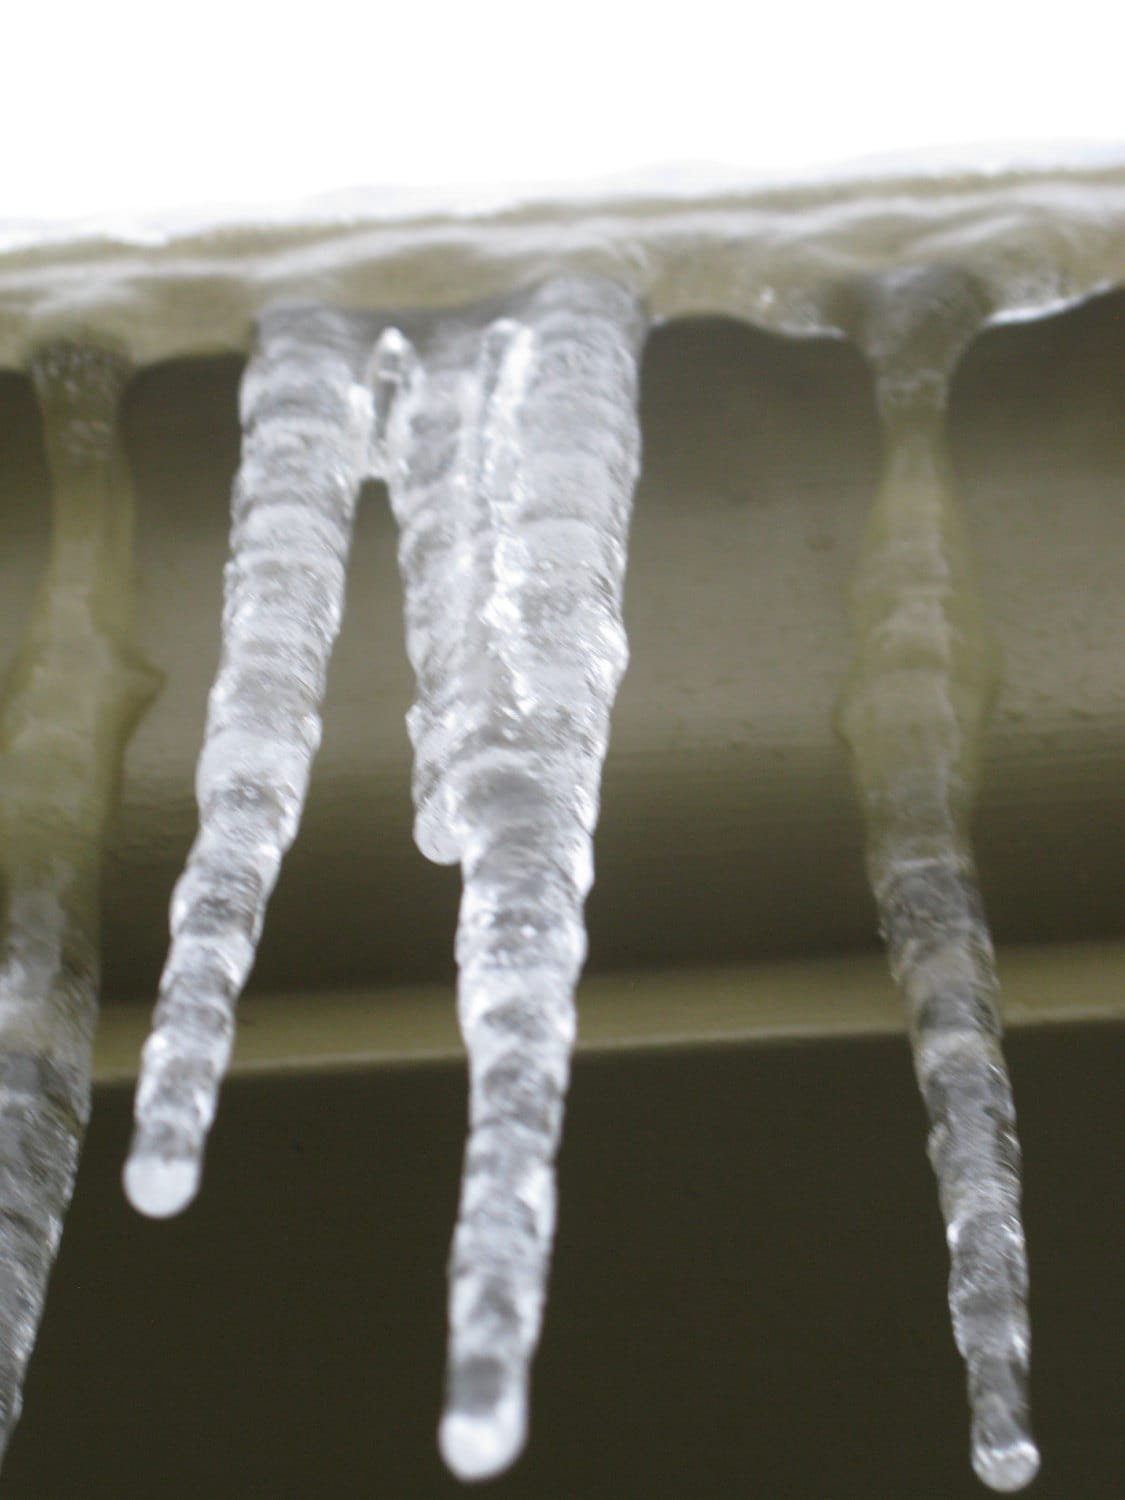 Slightly blurry photo of icicles